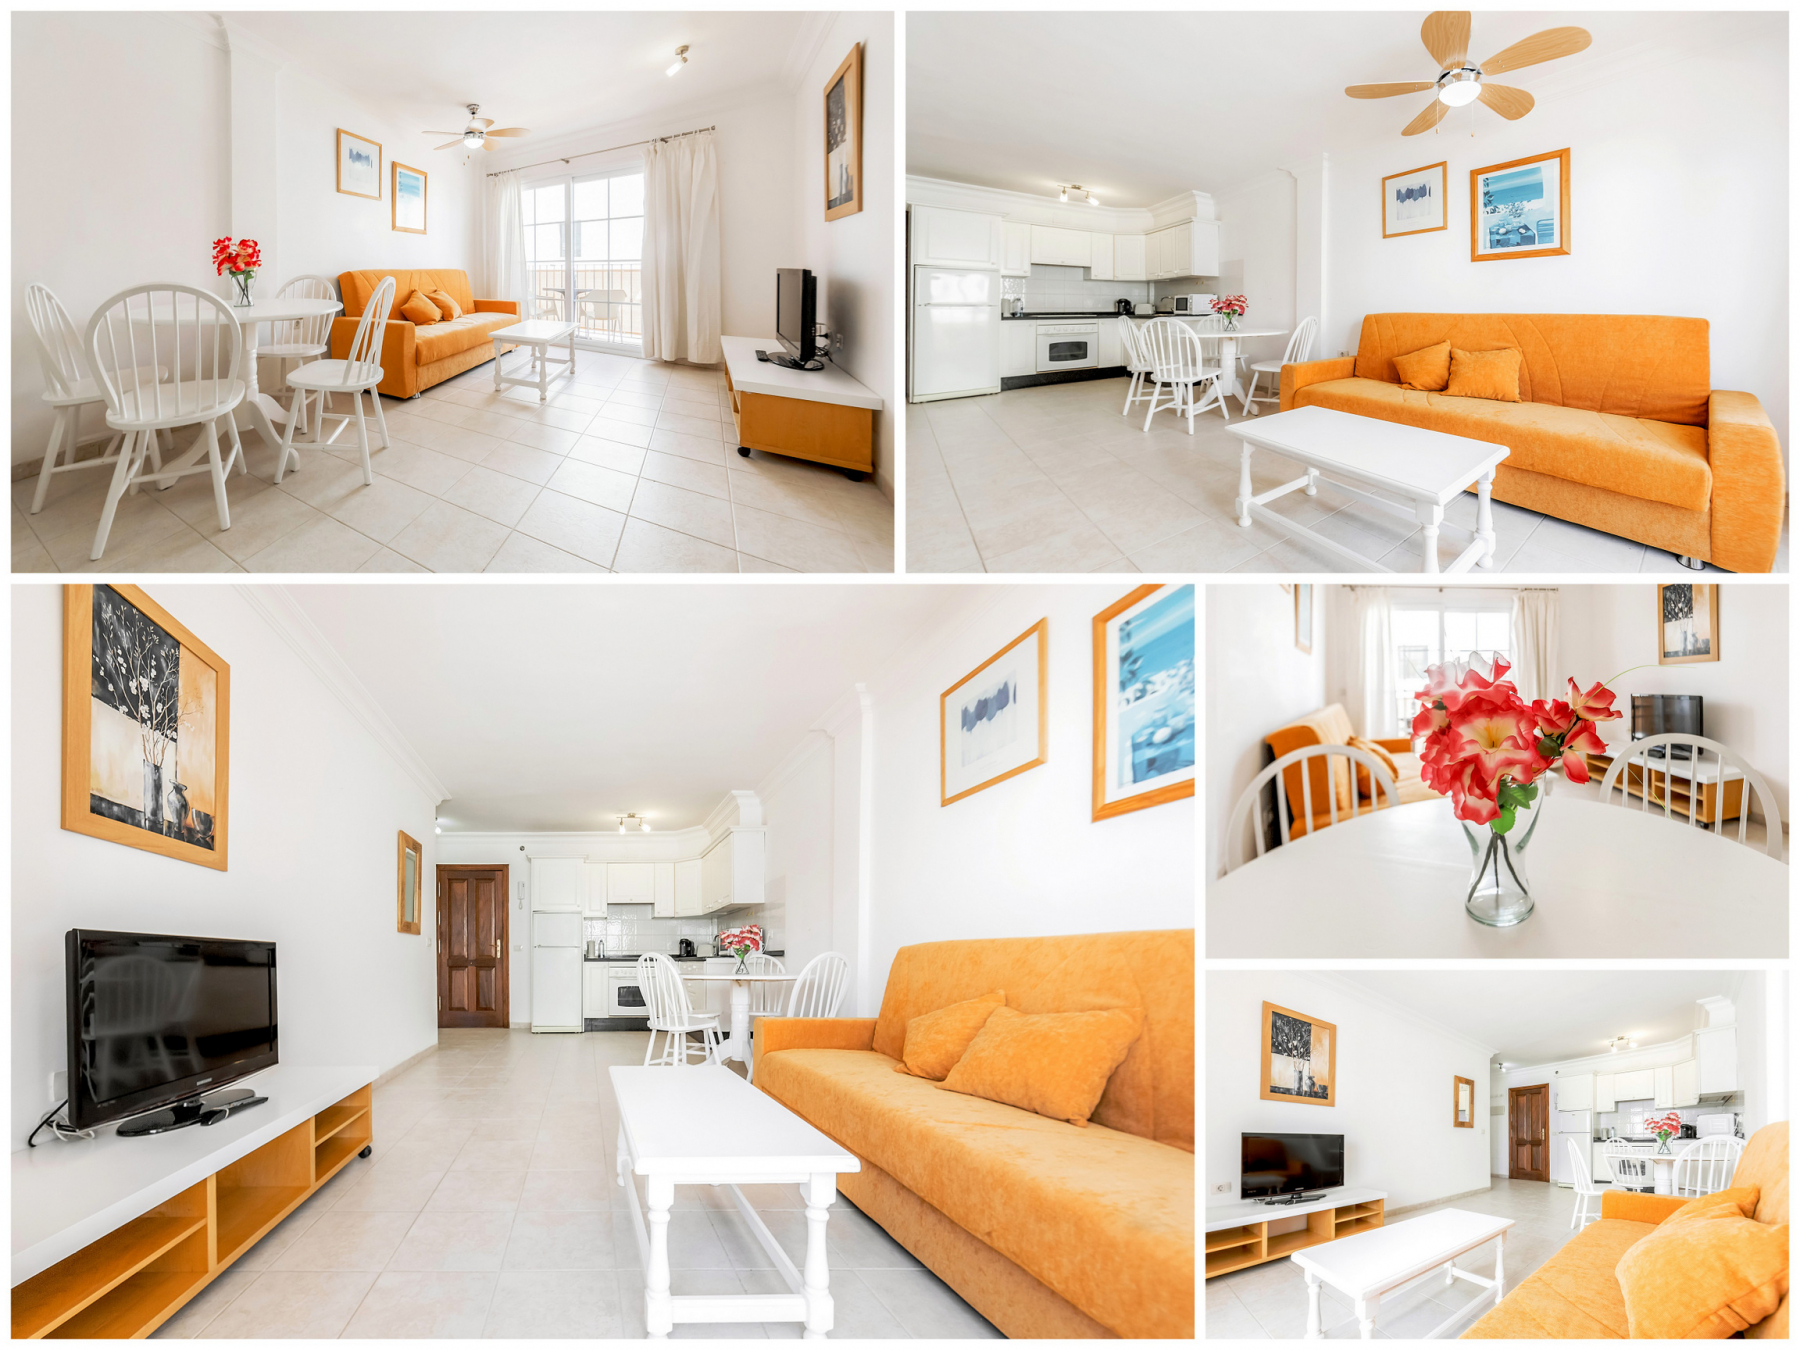 Properties for Sale in Tenerife, Canary Islands, Spain | SylkWayStar Real Estate. EXCLUSIVE OFFER. Image-26354